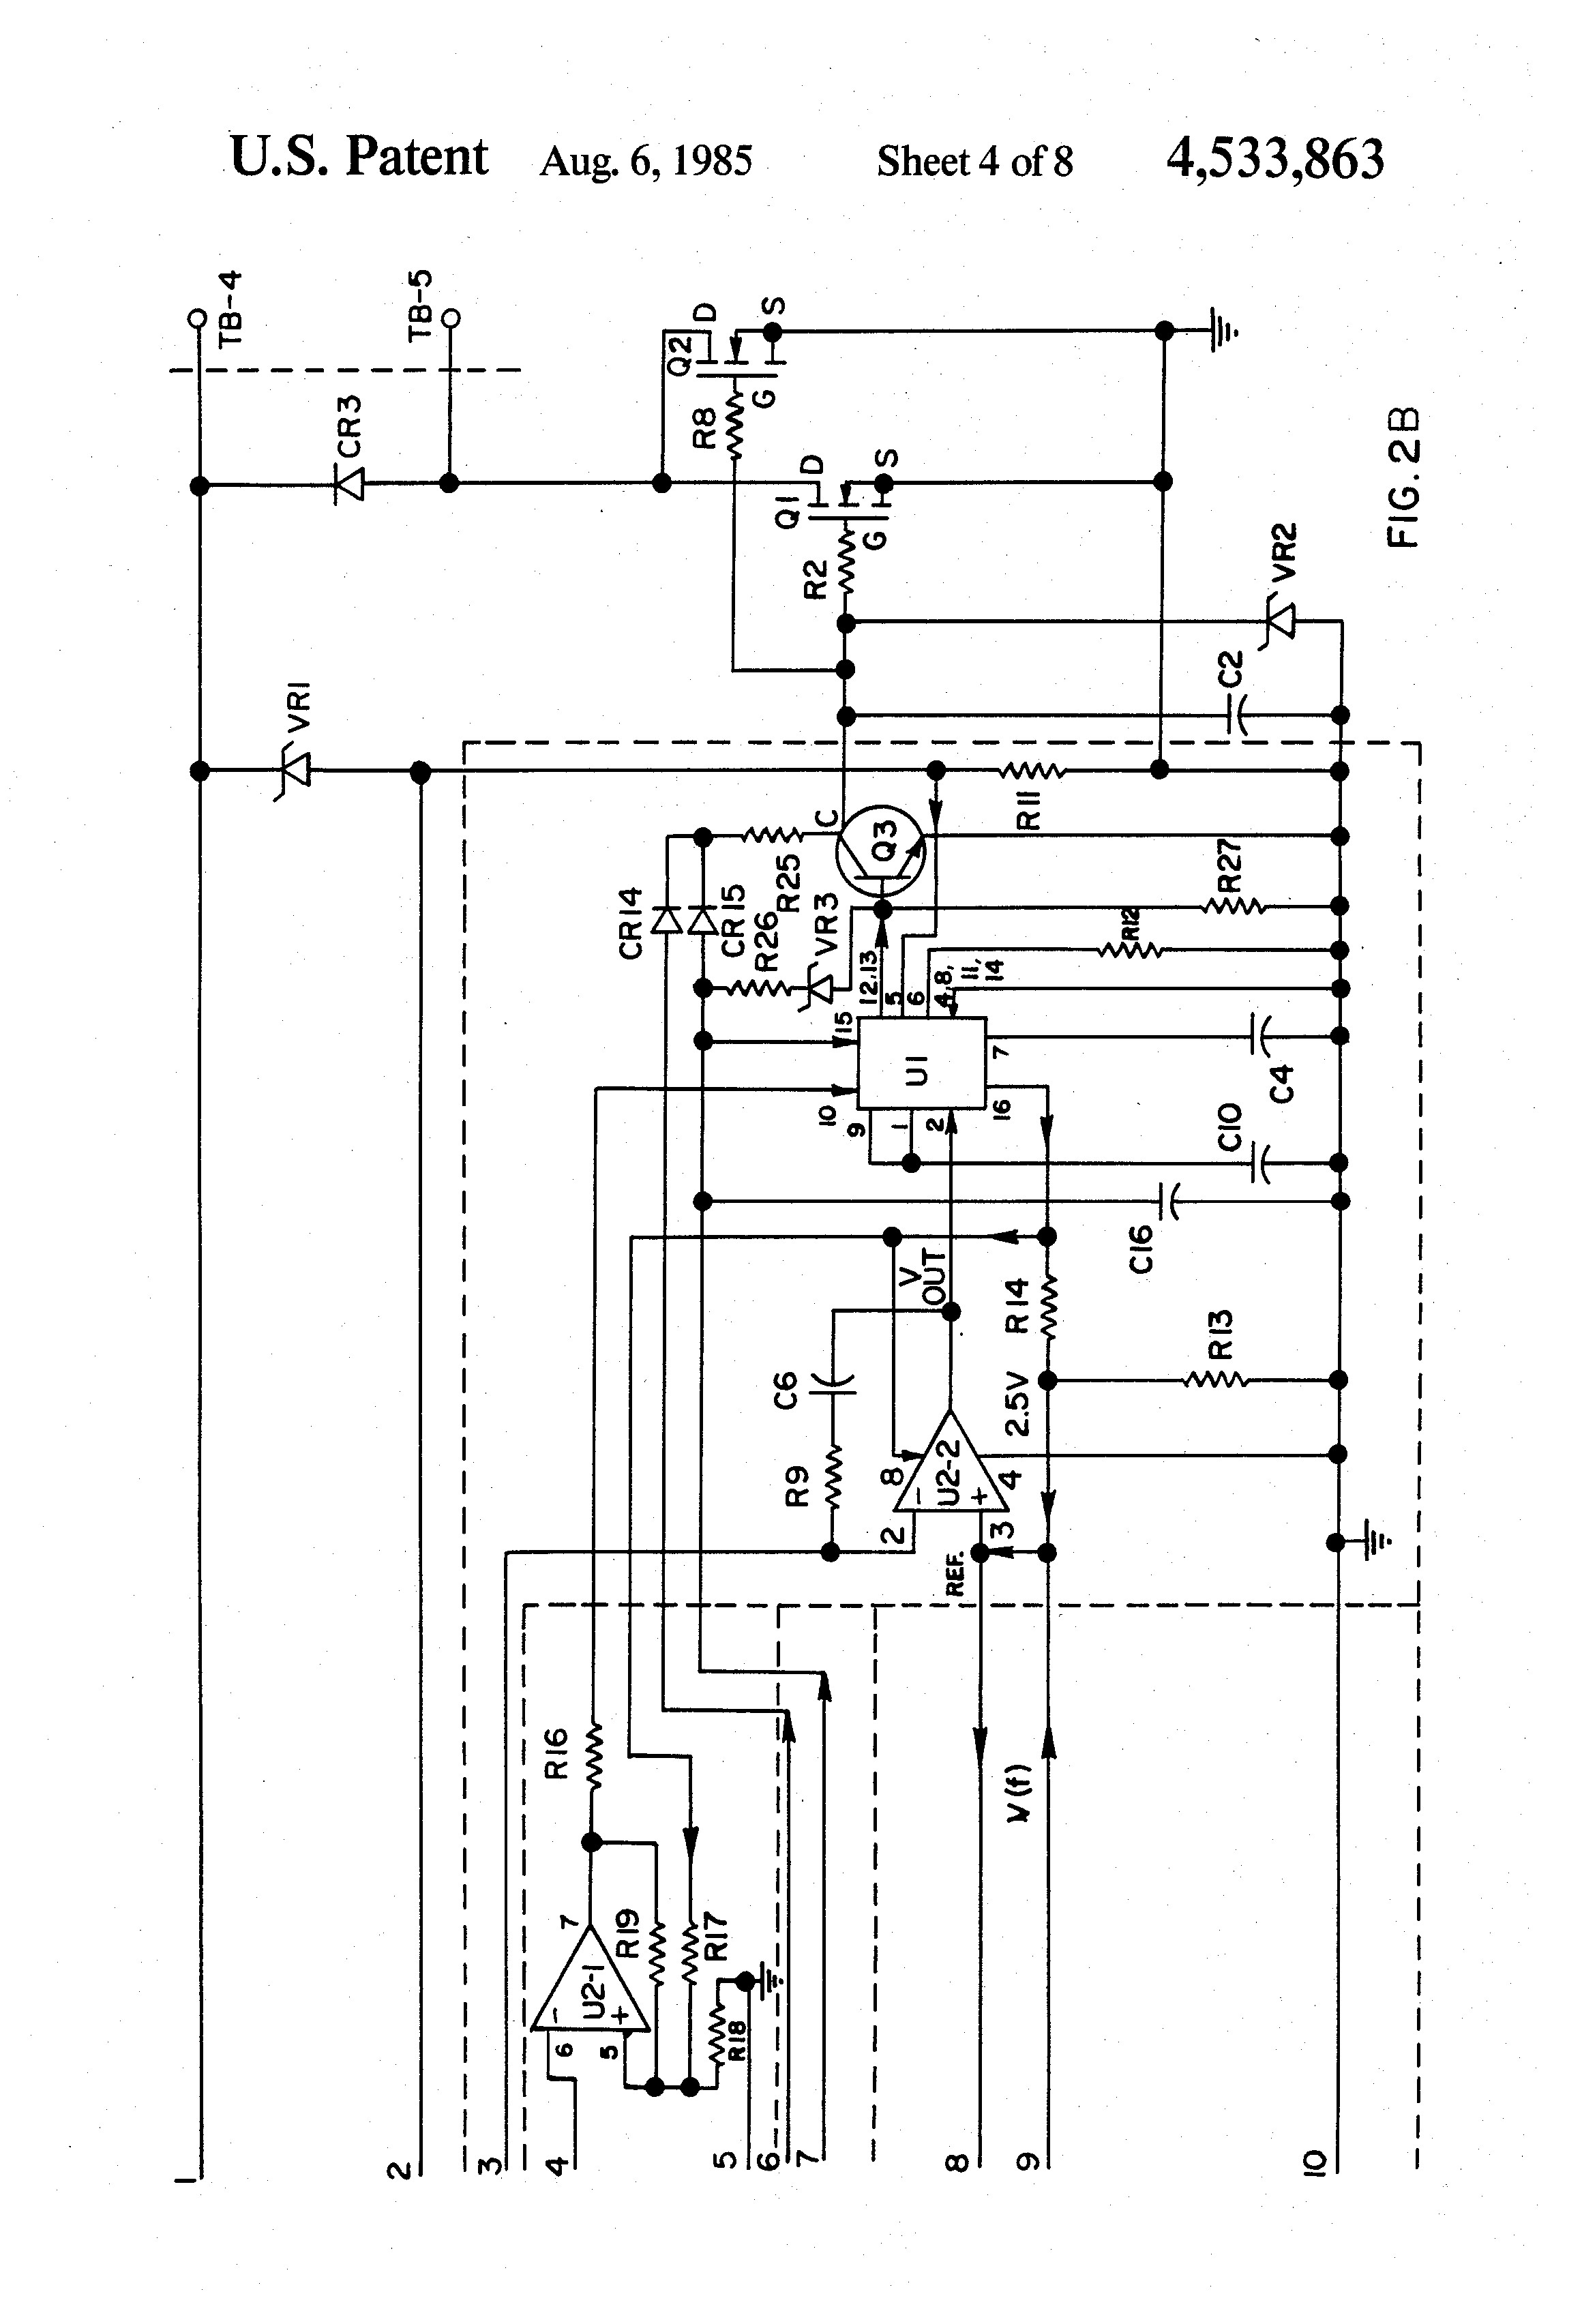 [DIAGRAM] Steering 1 F115 Wiring Diagram FULL Version HD